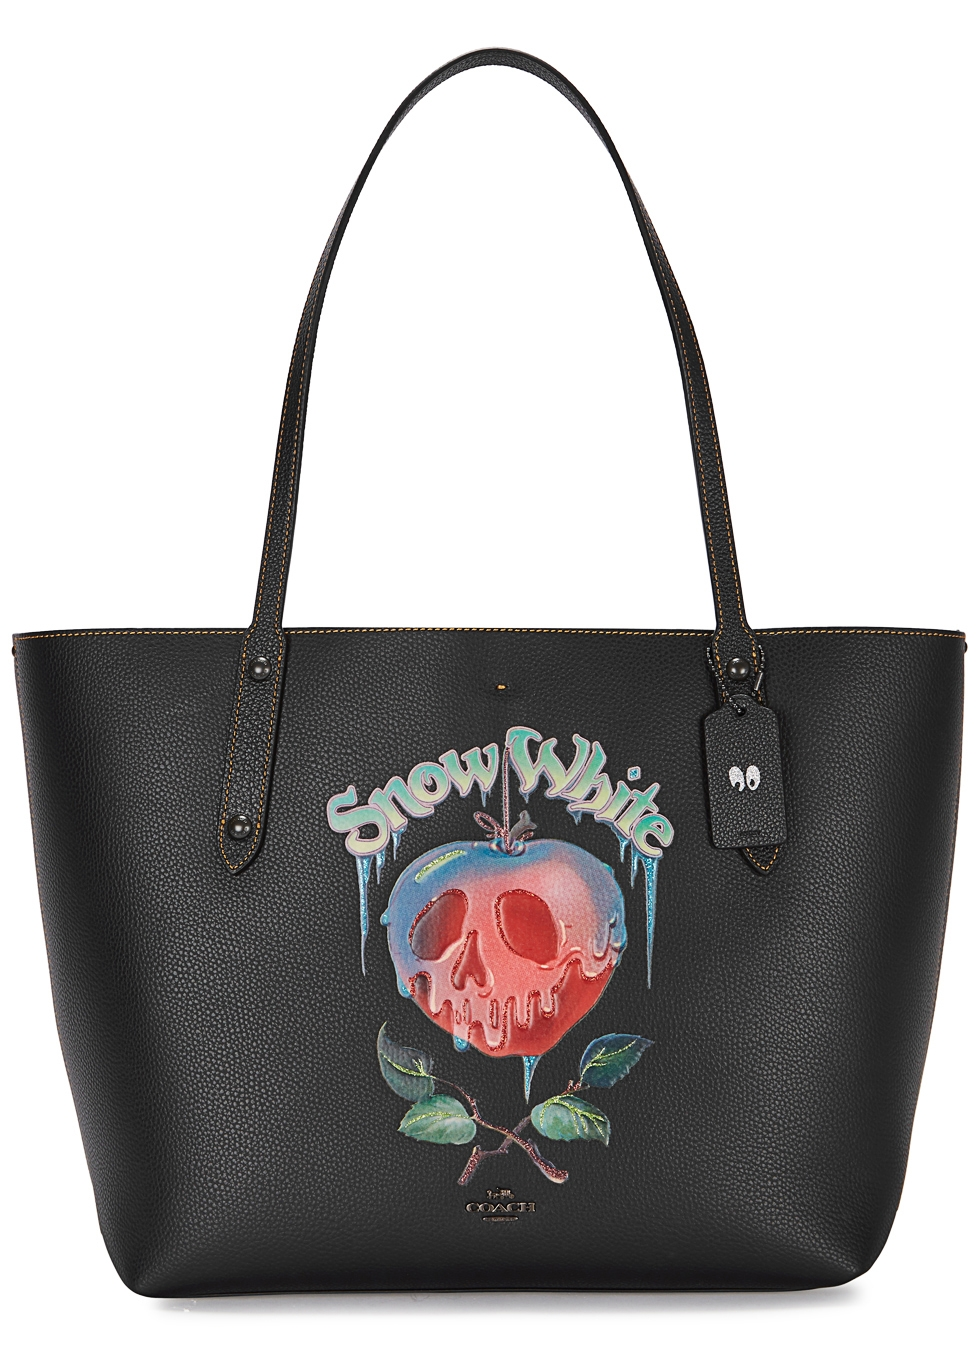 DARK DISNEY POISON APPLE LEATHER TOTE